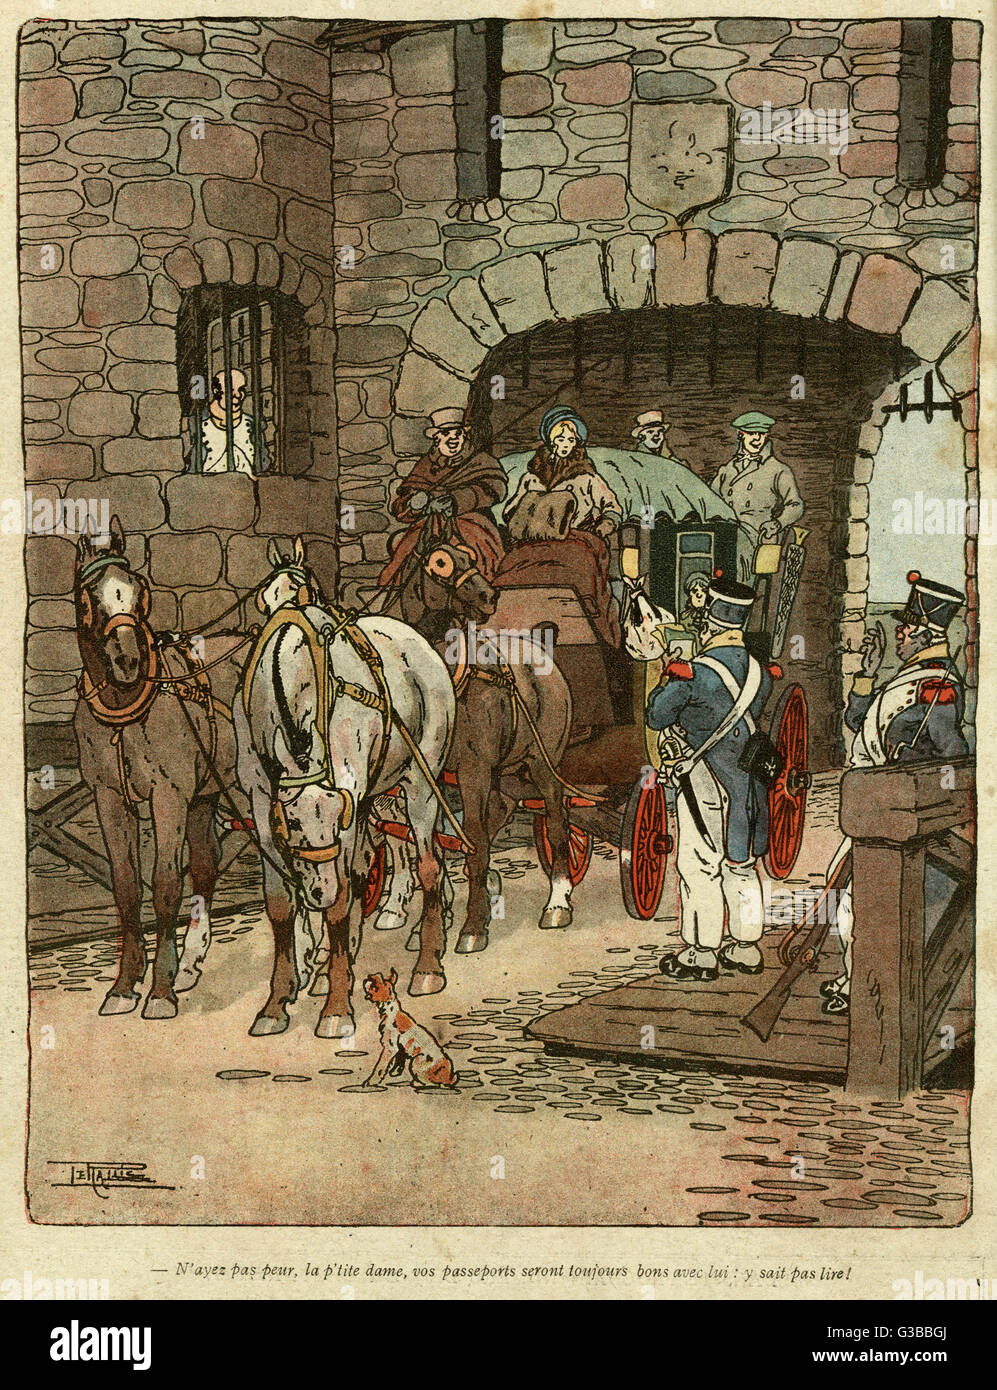 Cartoon depicting passport control in the old days, showing soldiers examining the passports of coach passengers Stock Photo